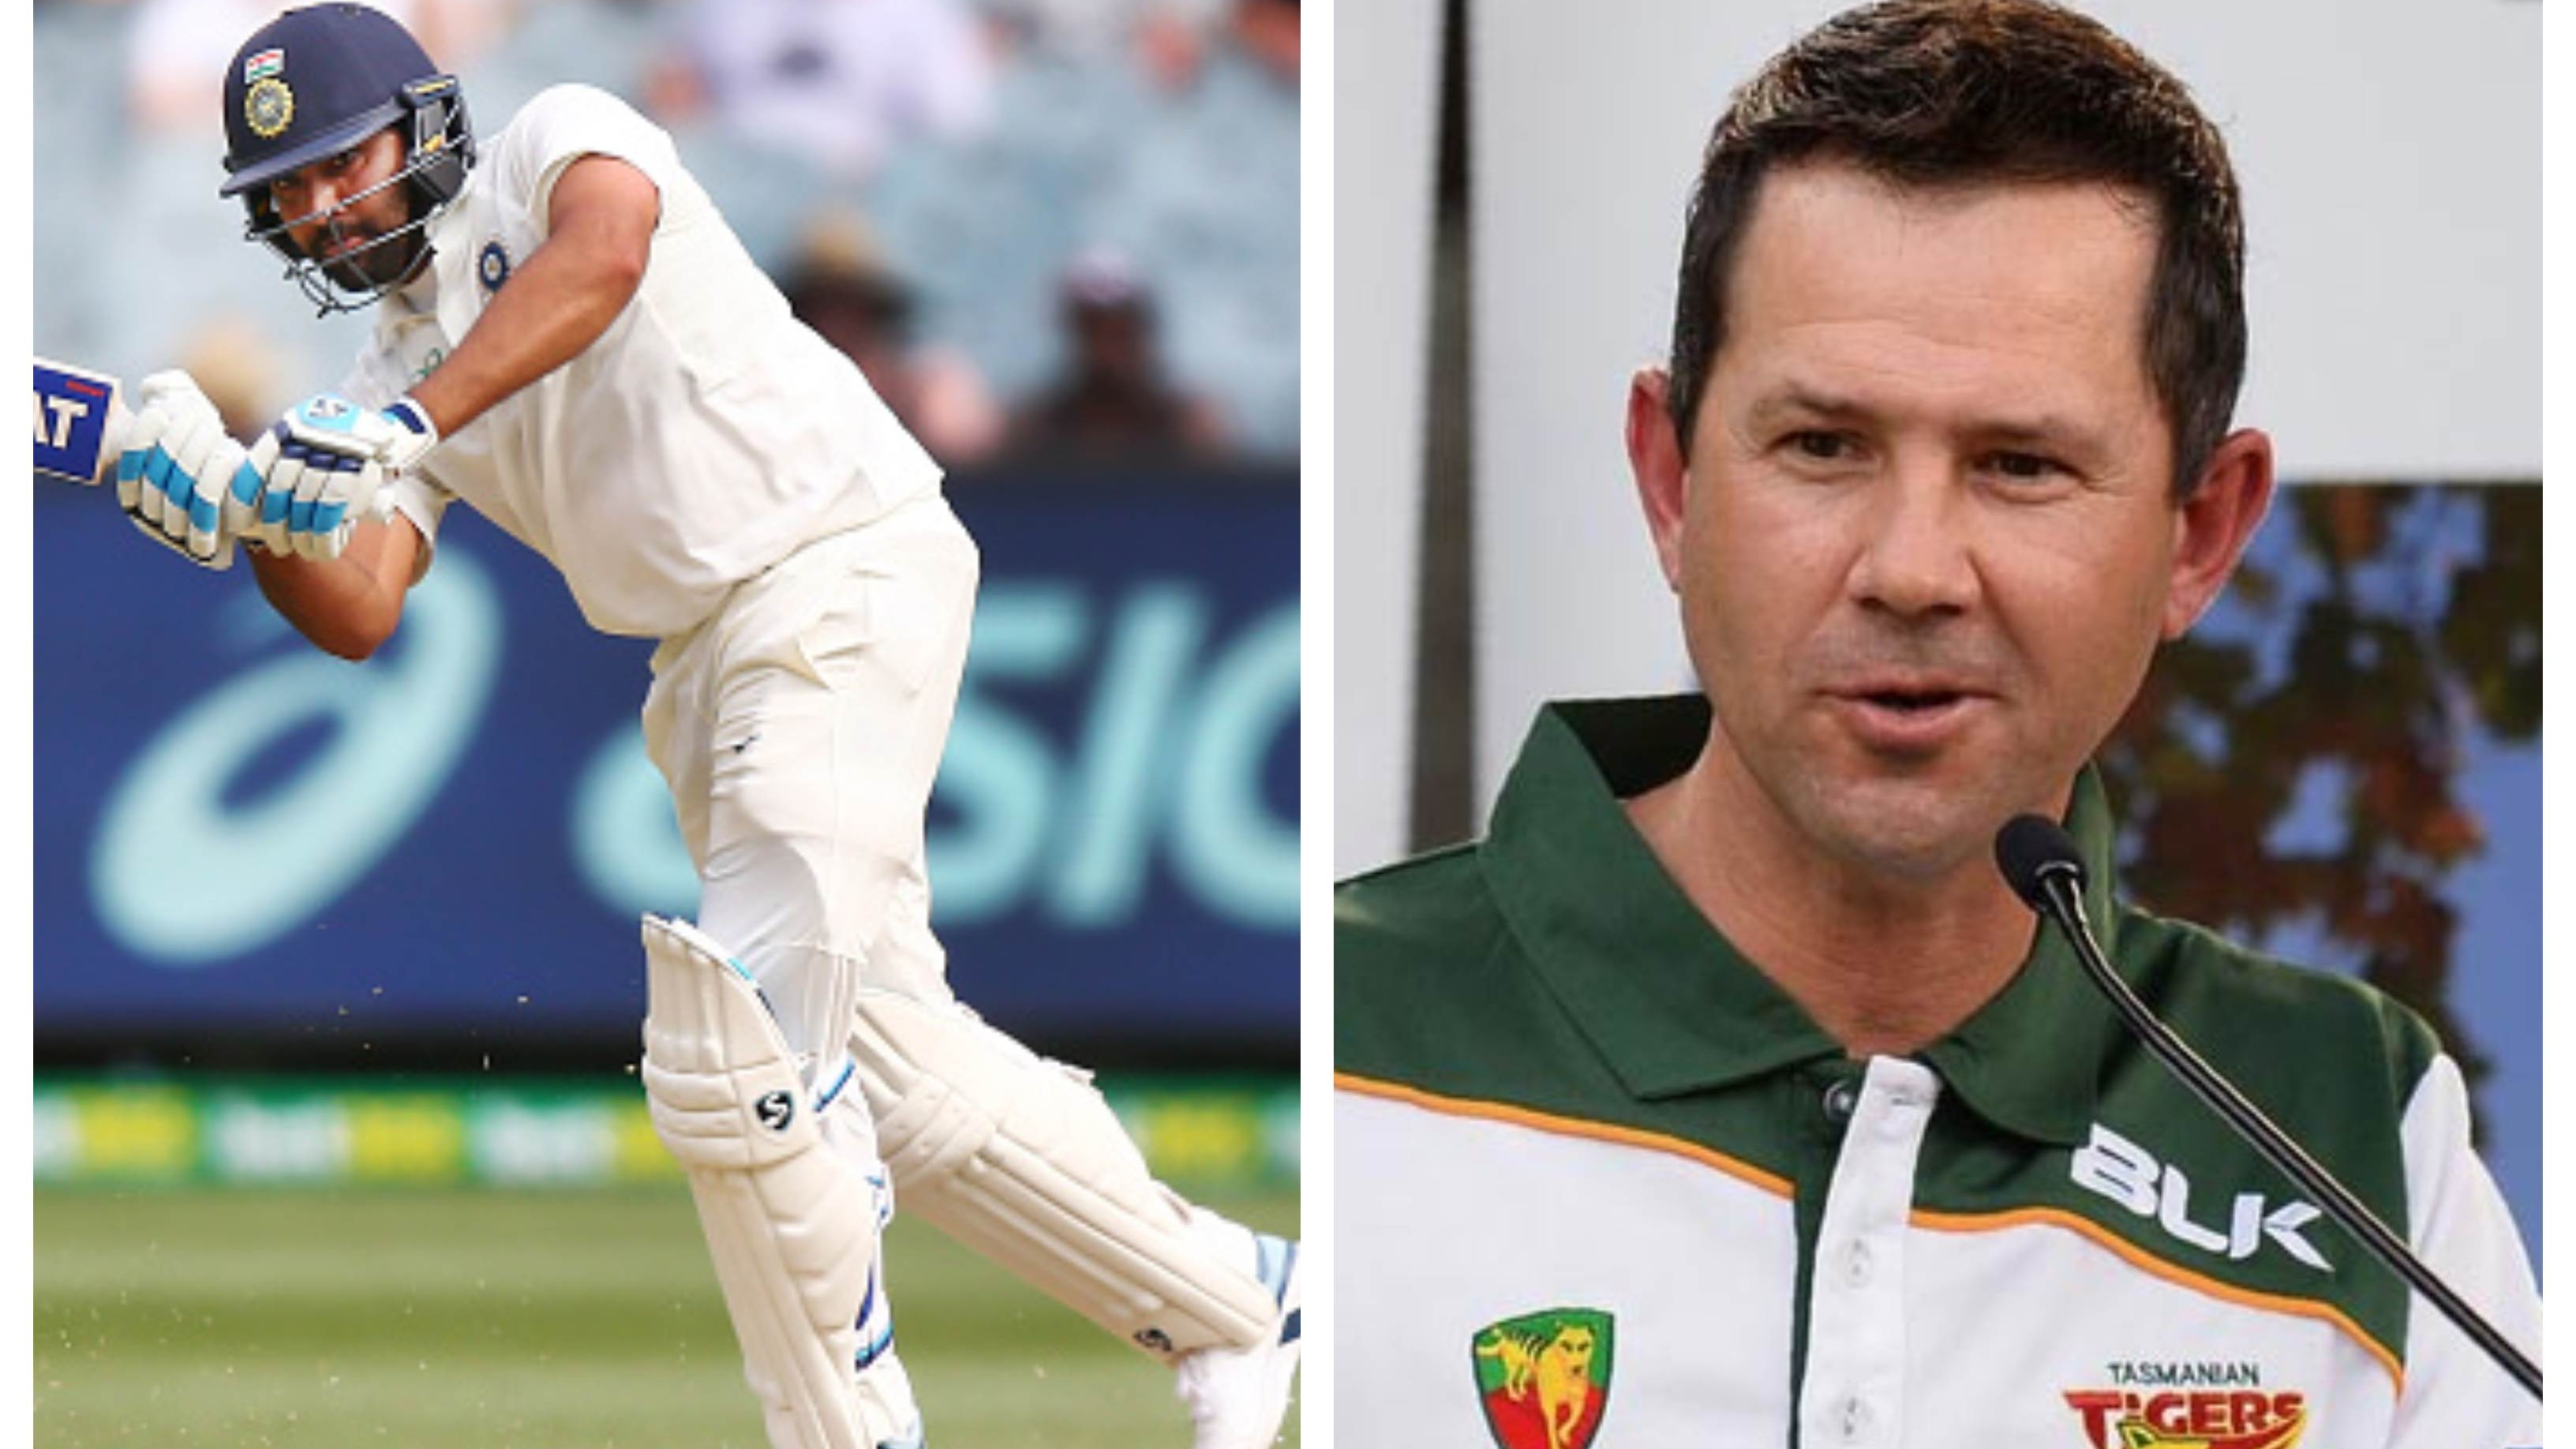 AUS v IND 2020-21: Ricky Ponting bats for Rohit Sharma's inclusion as opener at the earliest